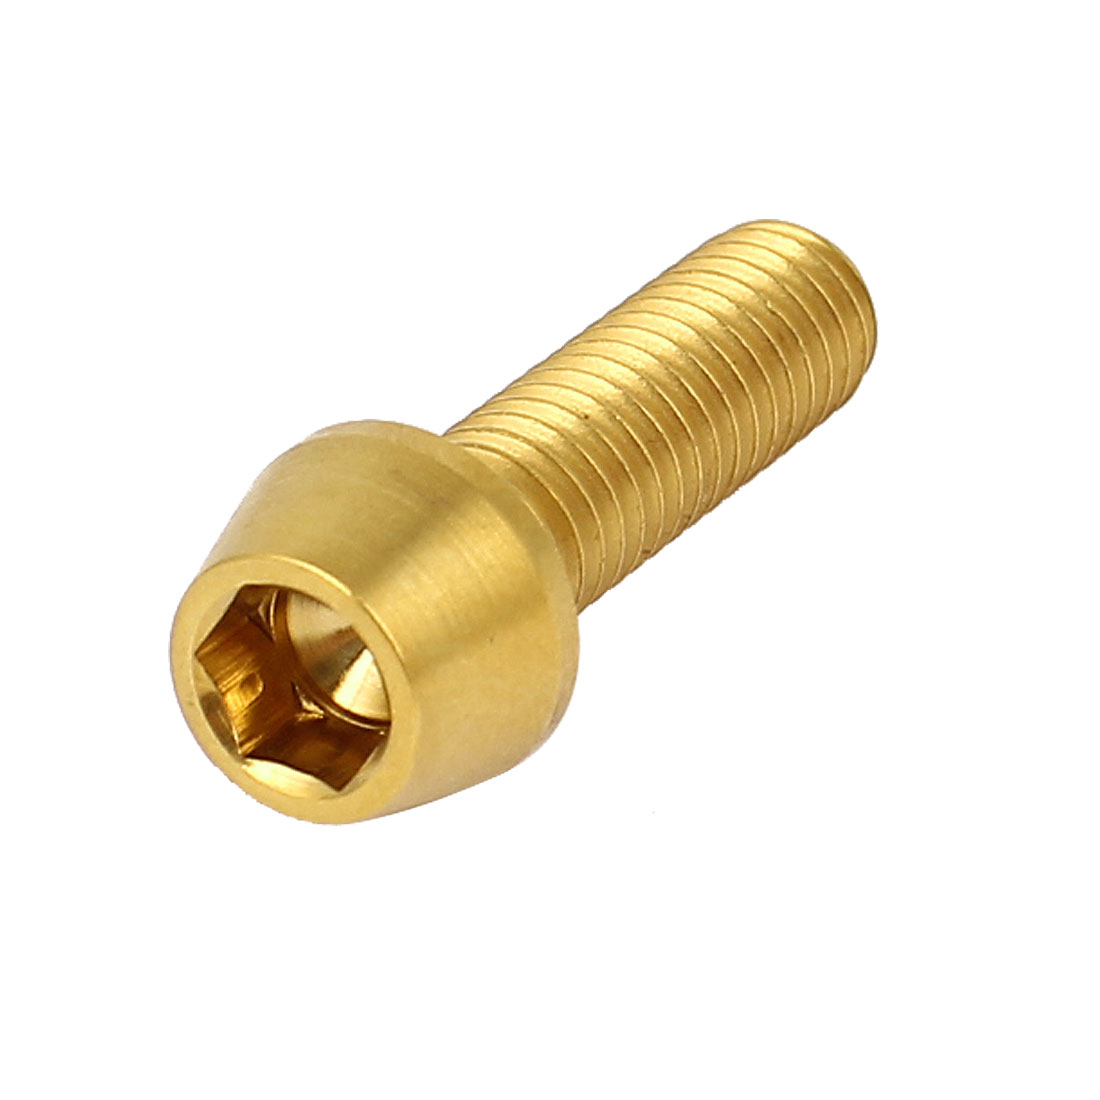 M6x20mm Gold Tone Titanium Ti Hex Socket Taper Head Bolts Bicycle Fasteners